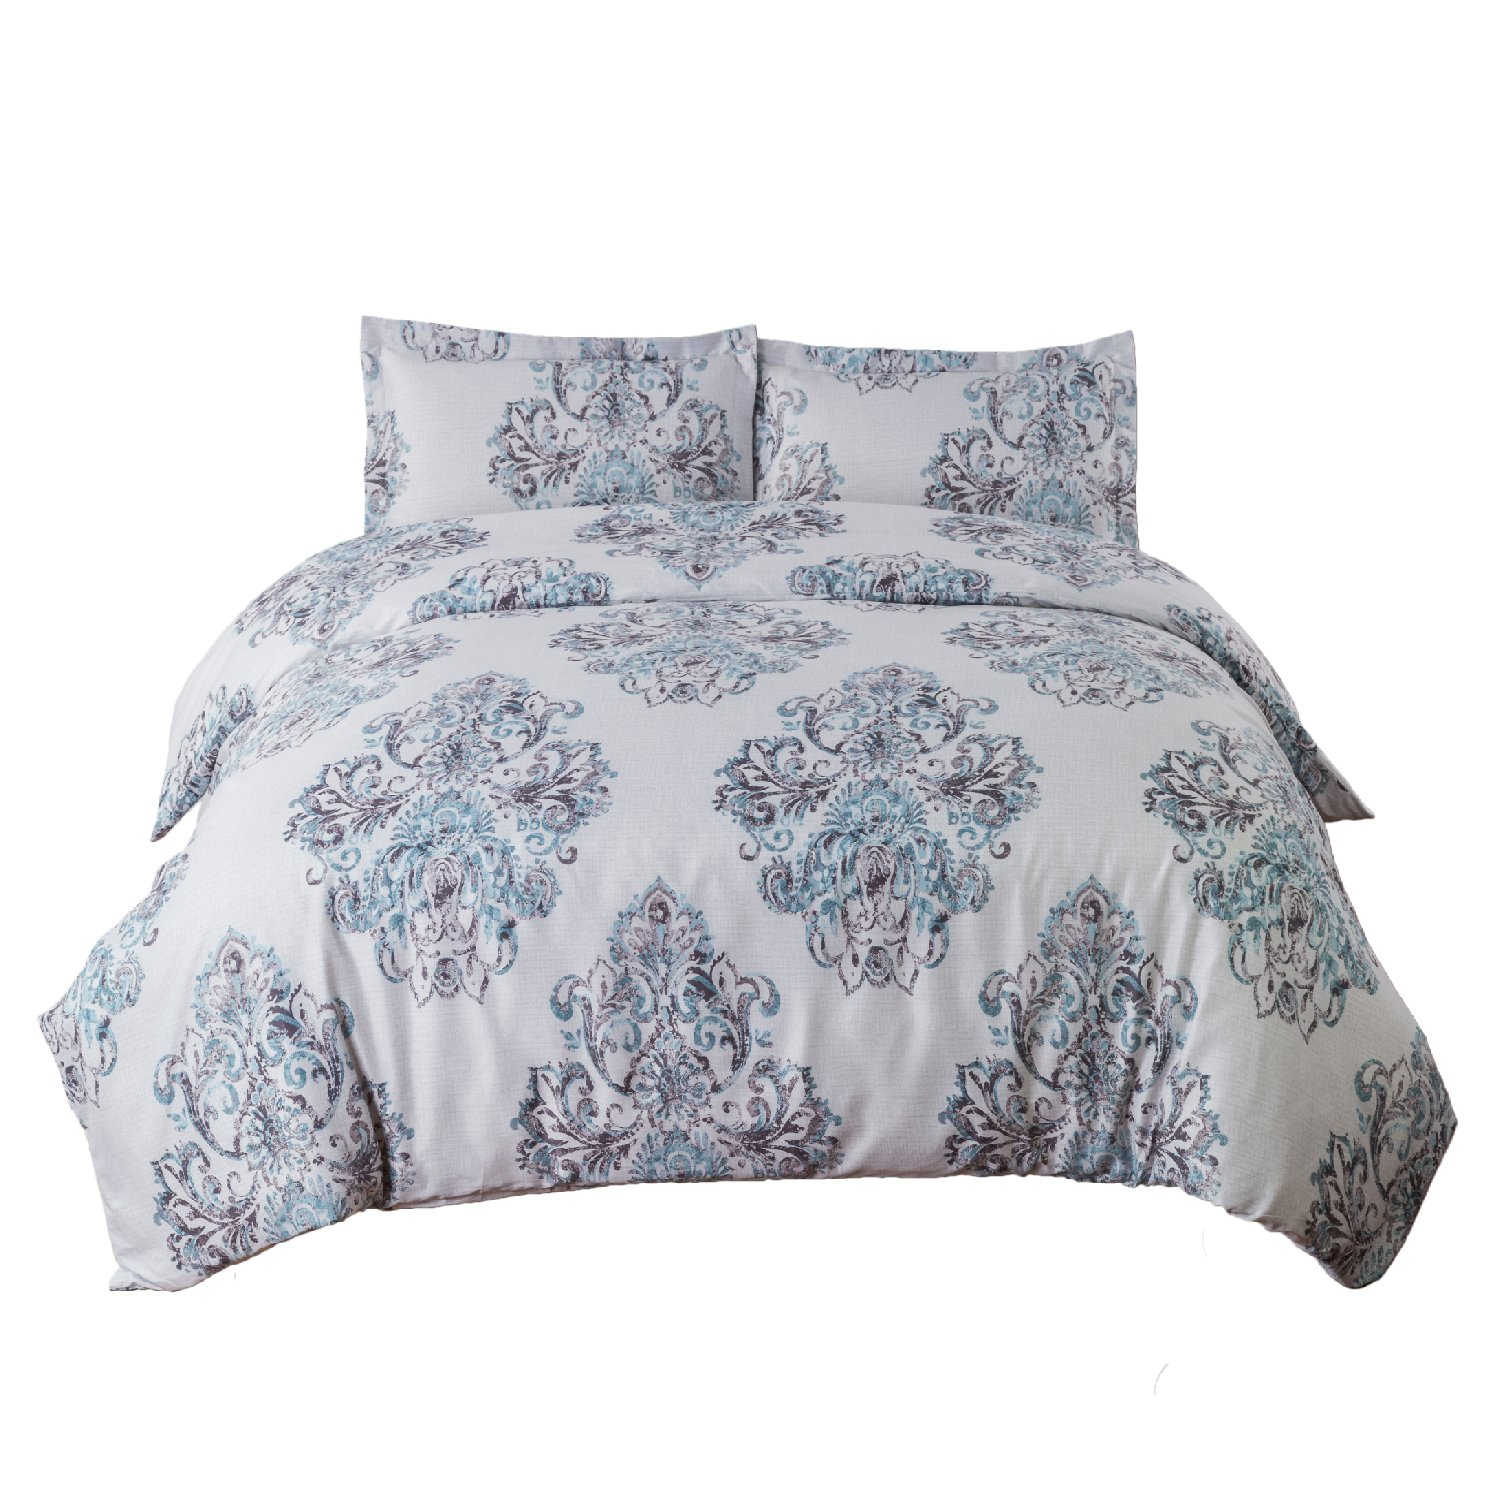 Damask Floral Duvet Cover Set King Size Grey Duvet Cover Zipper Closure 3 Pieces Bedding Set